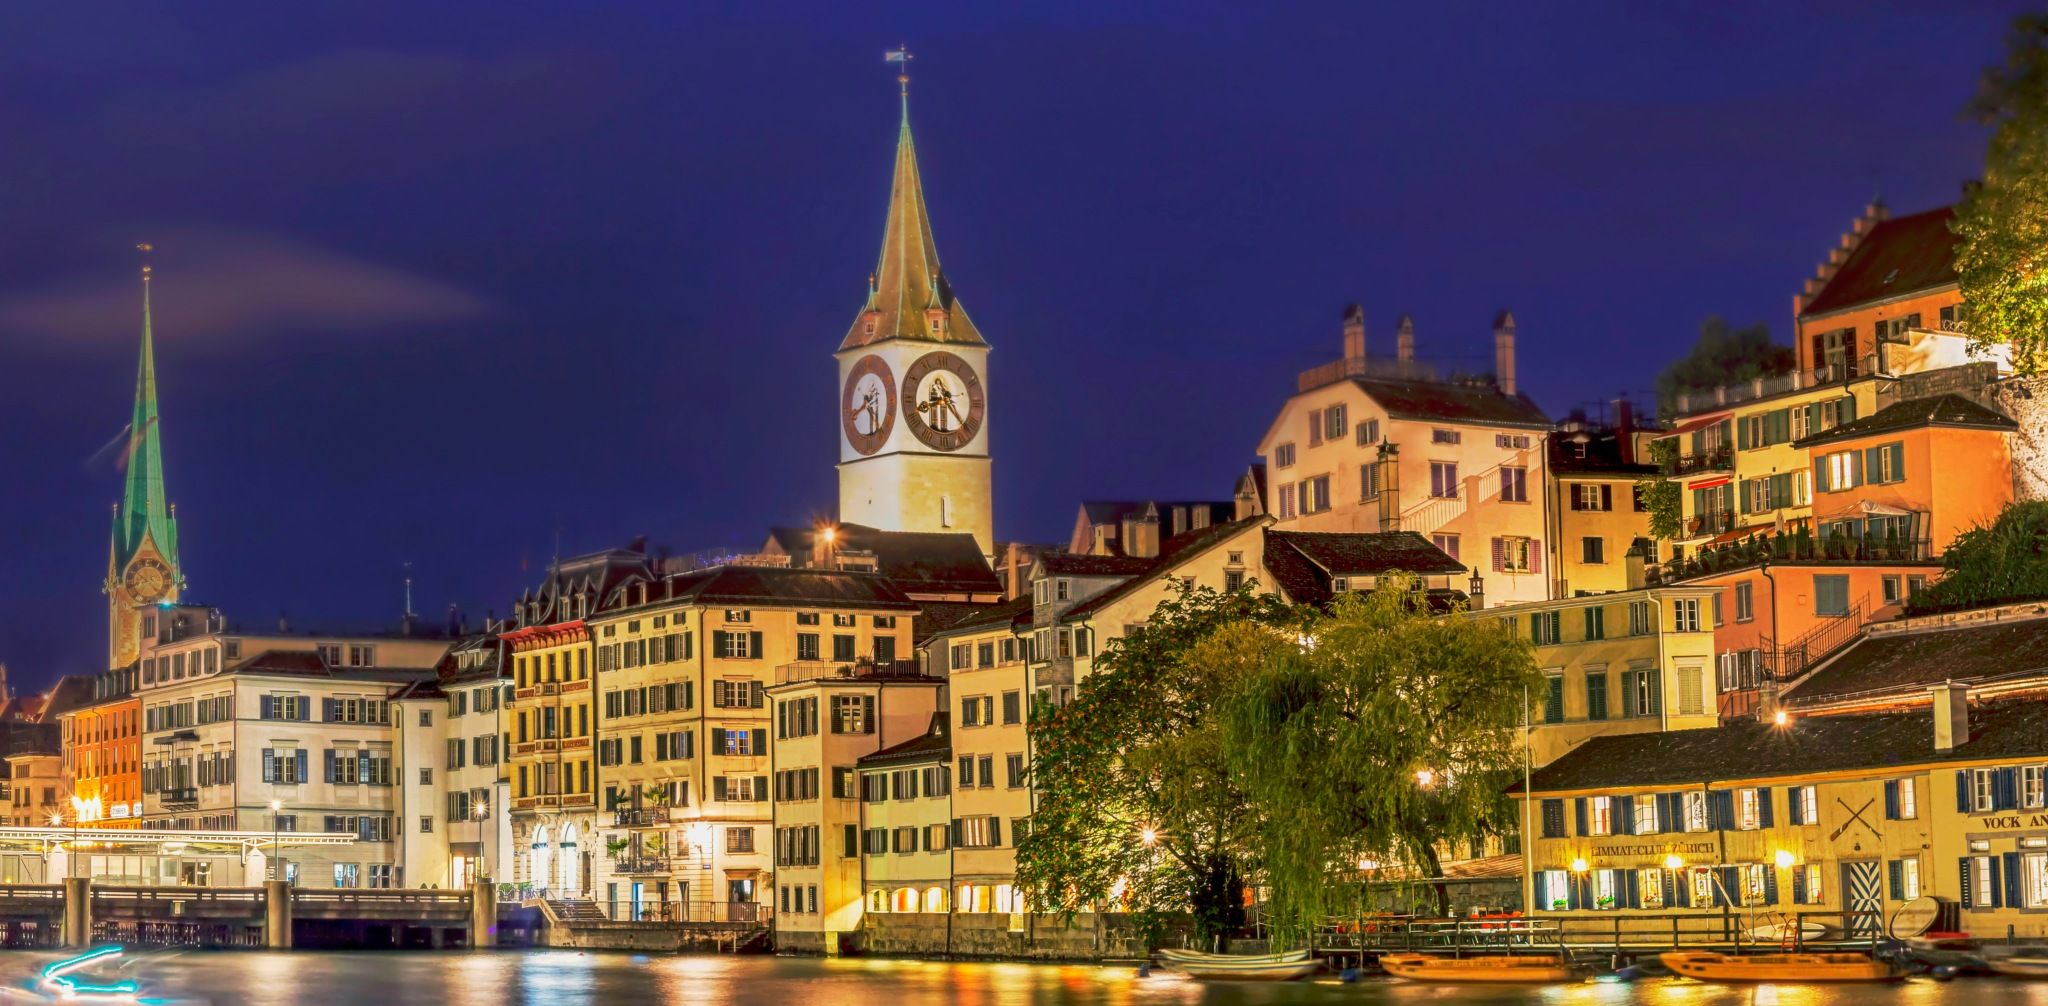 Zurich Old town by psandipan